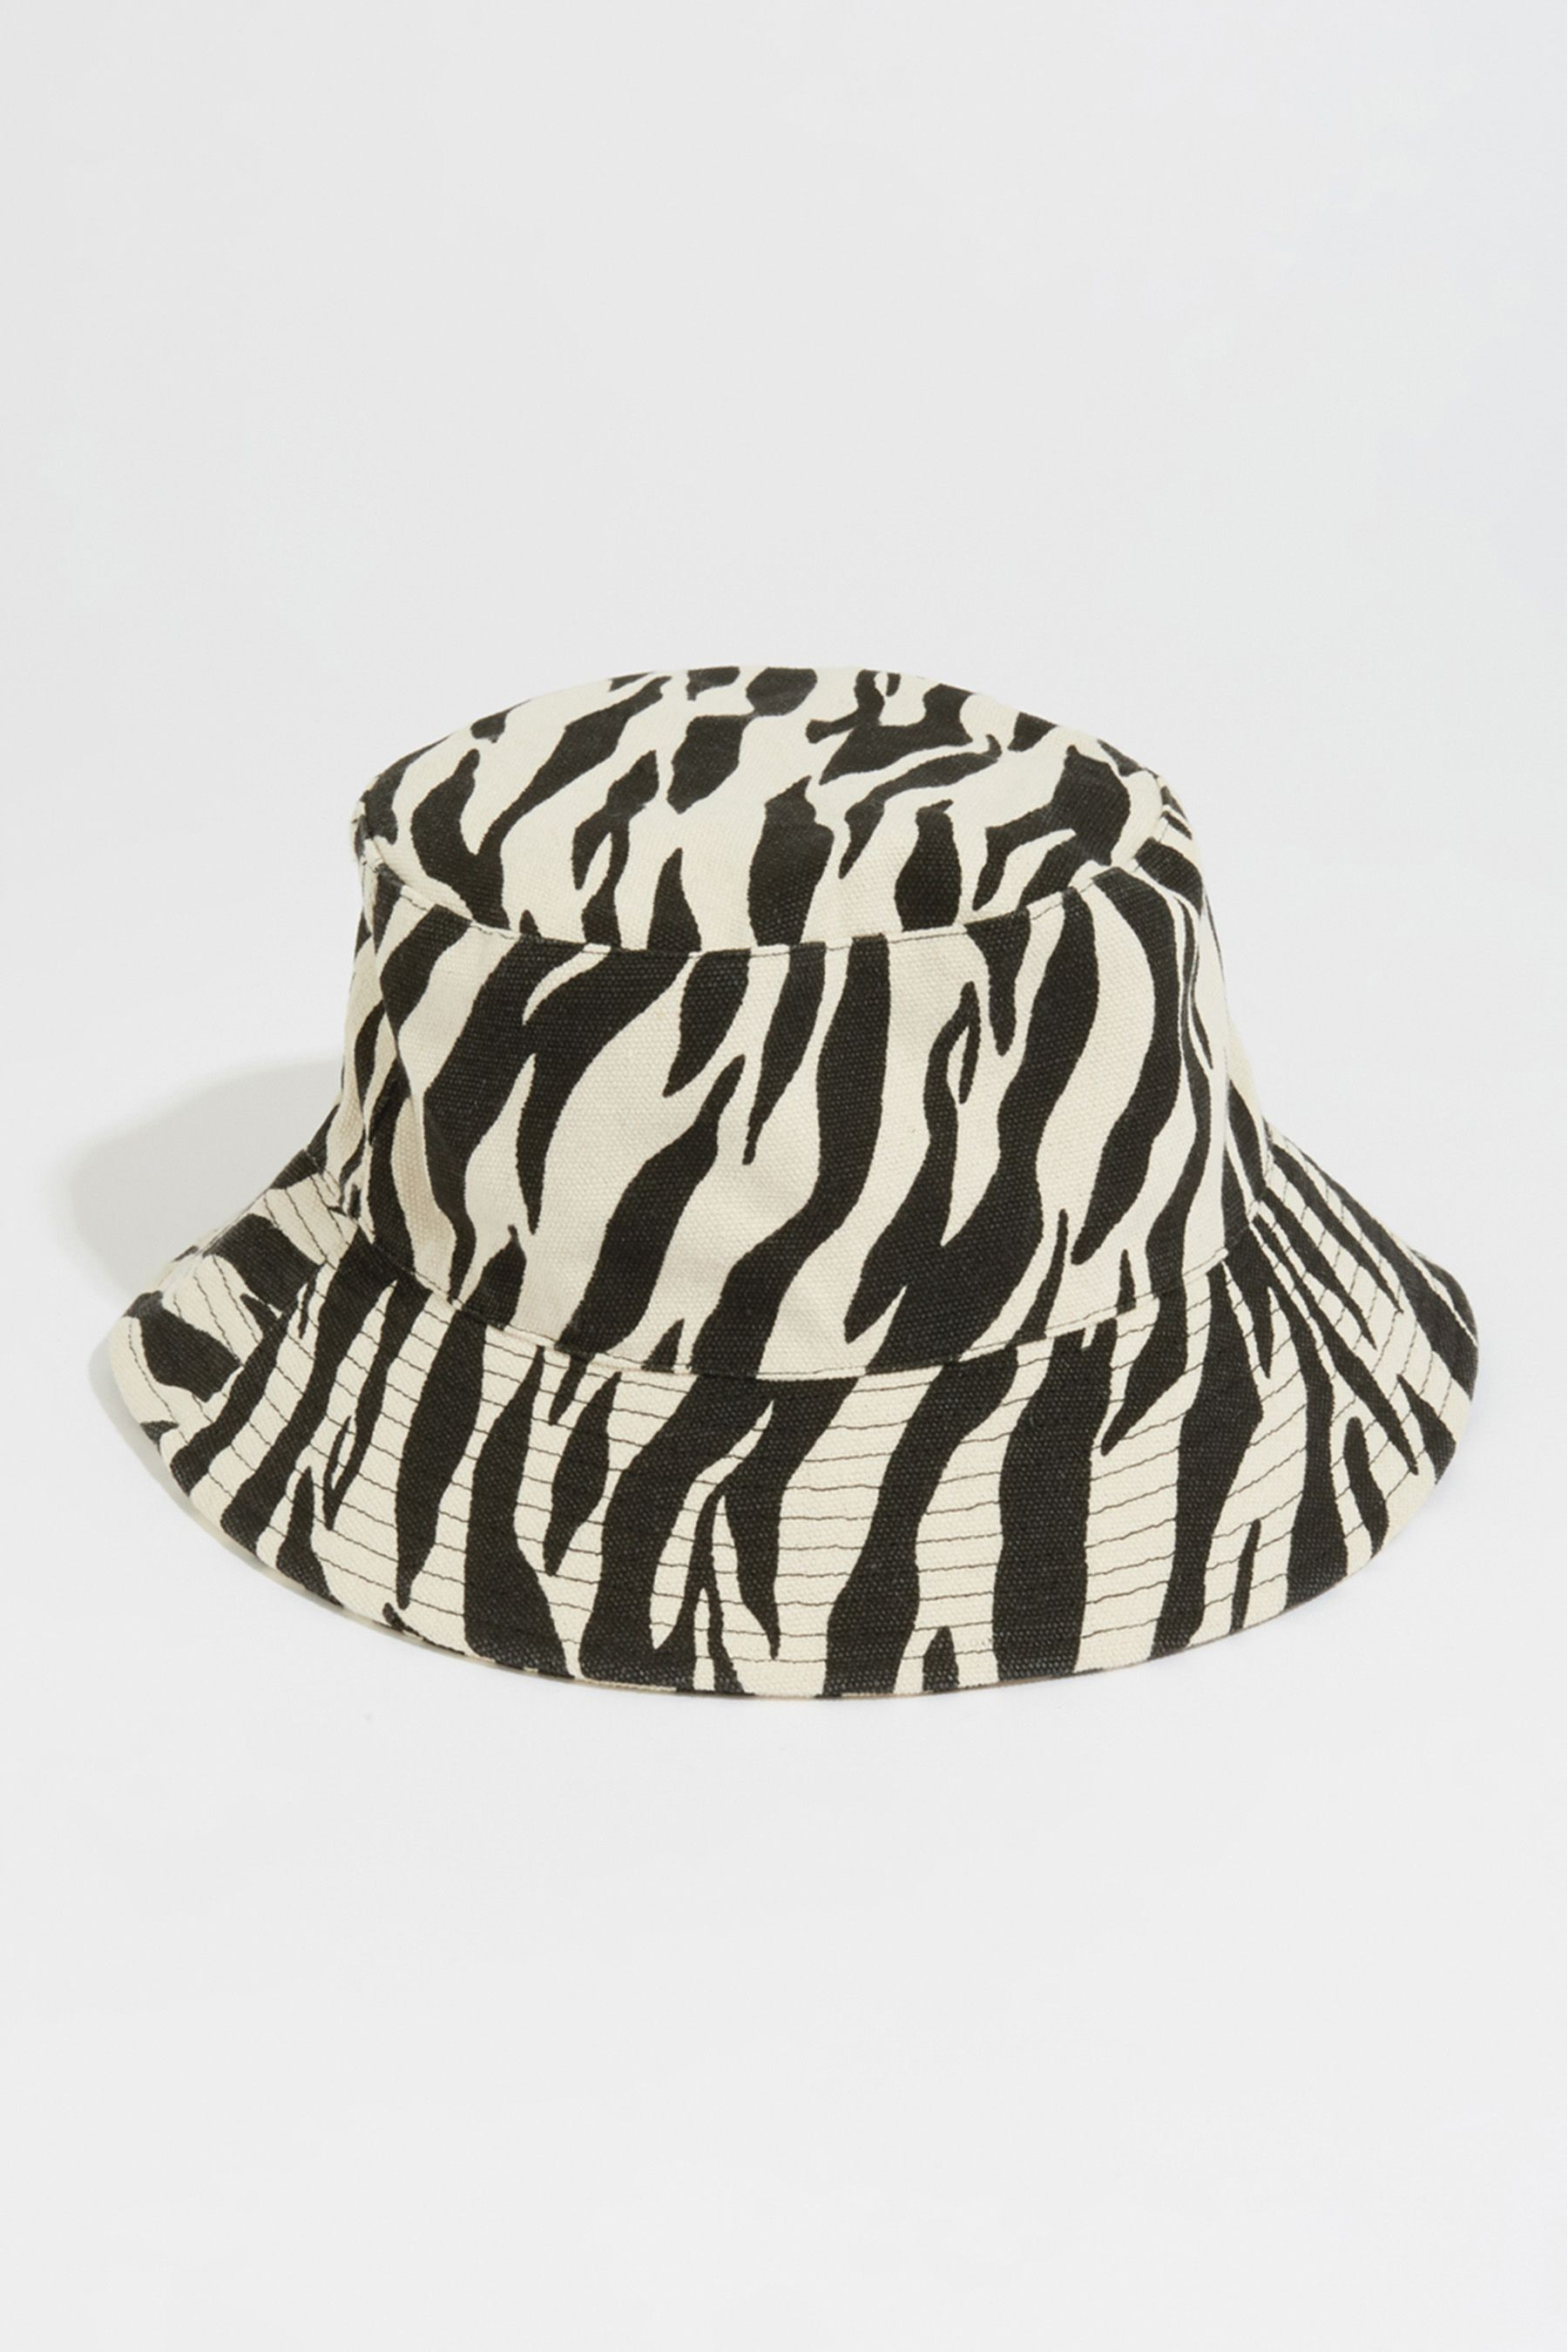 d83f3399b Womens Warehouse Animal Print Bucket Hat - Natural | accessories in ...